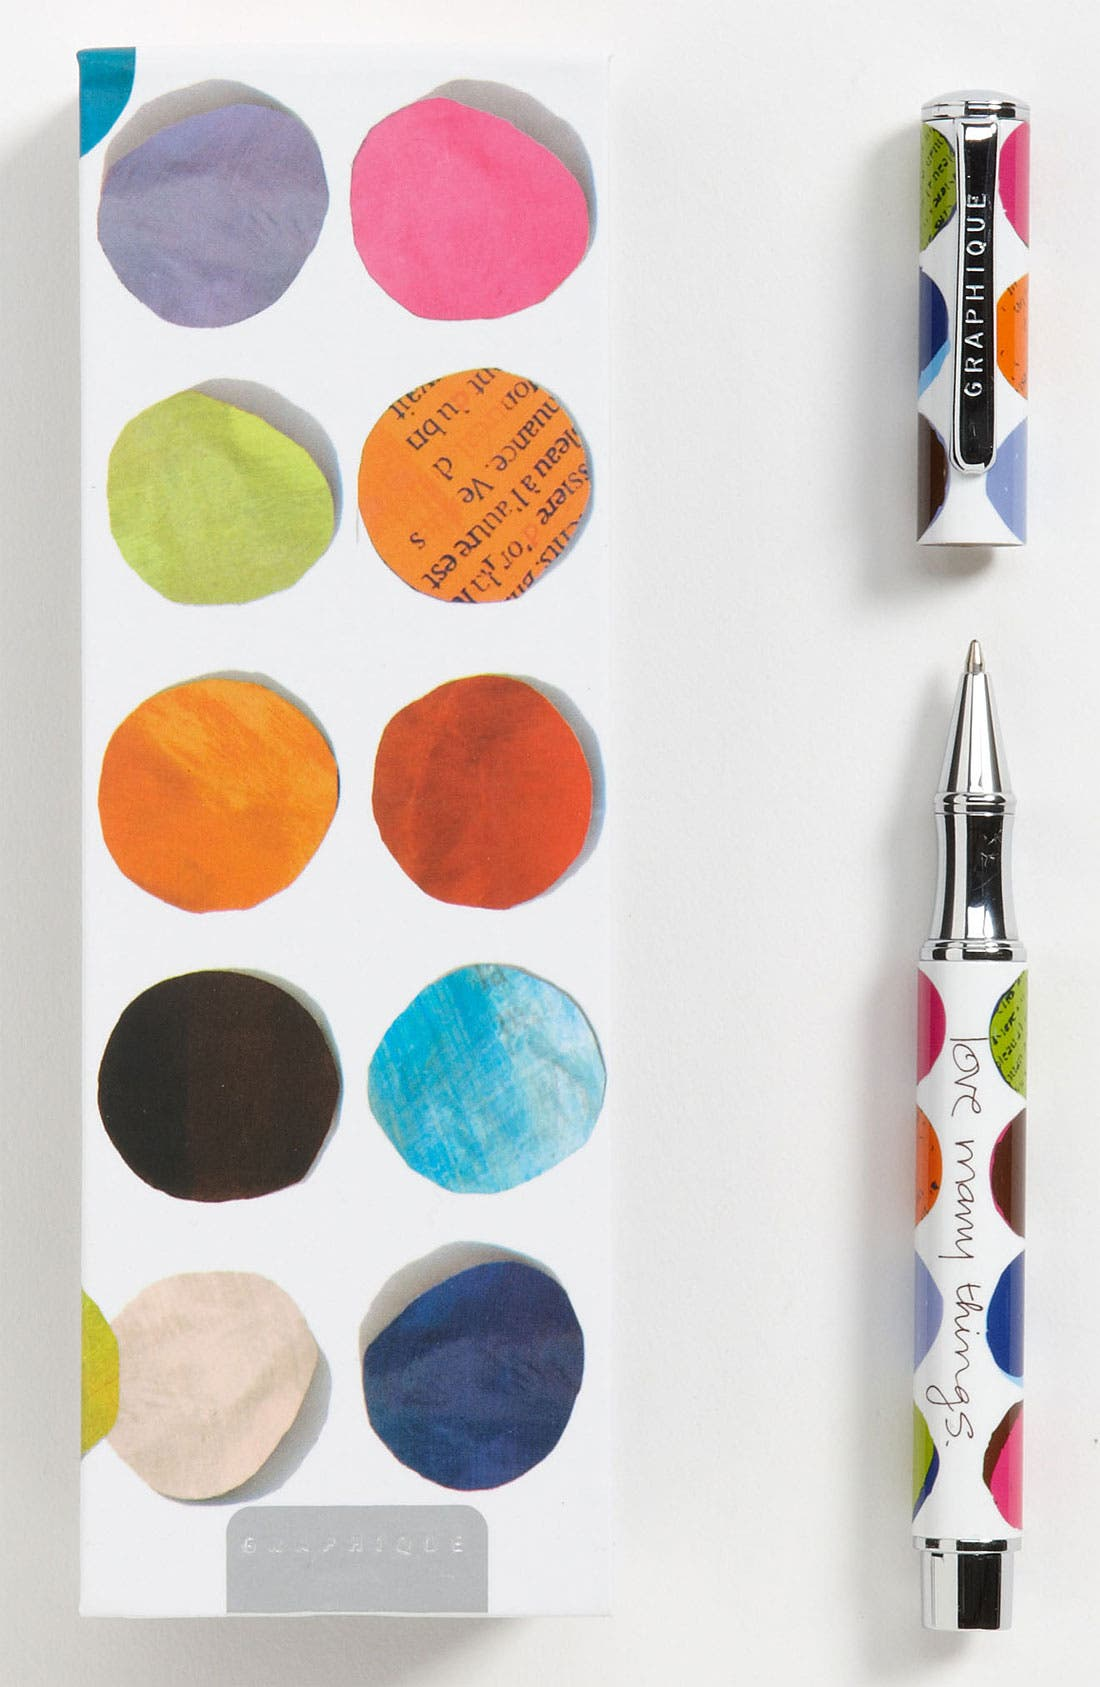 Alternate Image 1 Selected - Graphique de France 'Koco - Love Many Things' Rollerball Pen